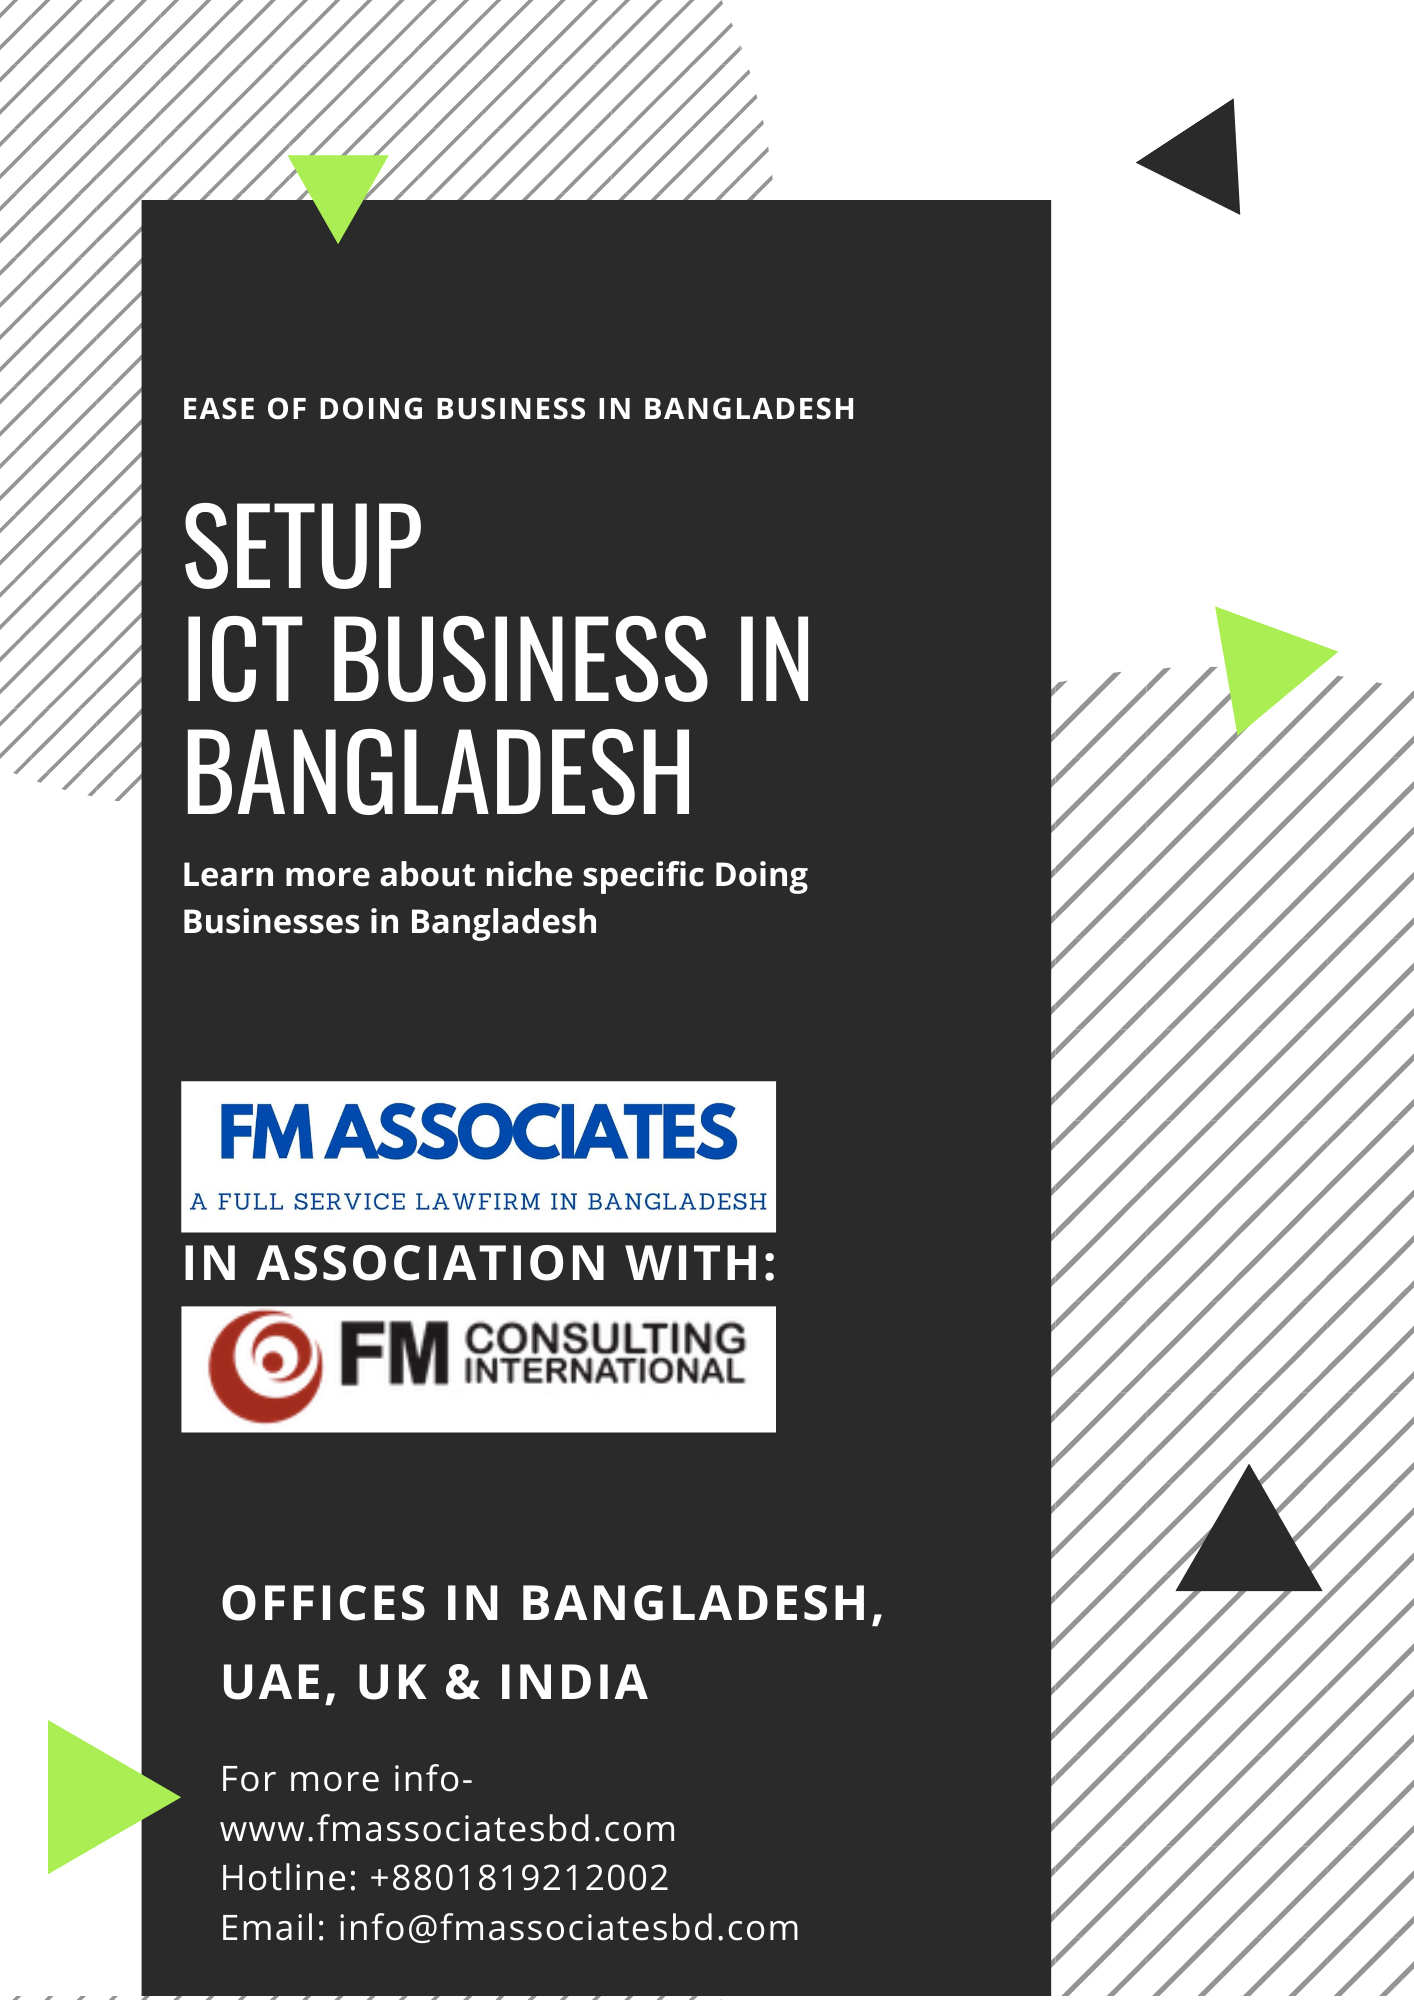 How to Setup ICT Business in Bangladesh